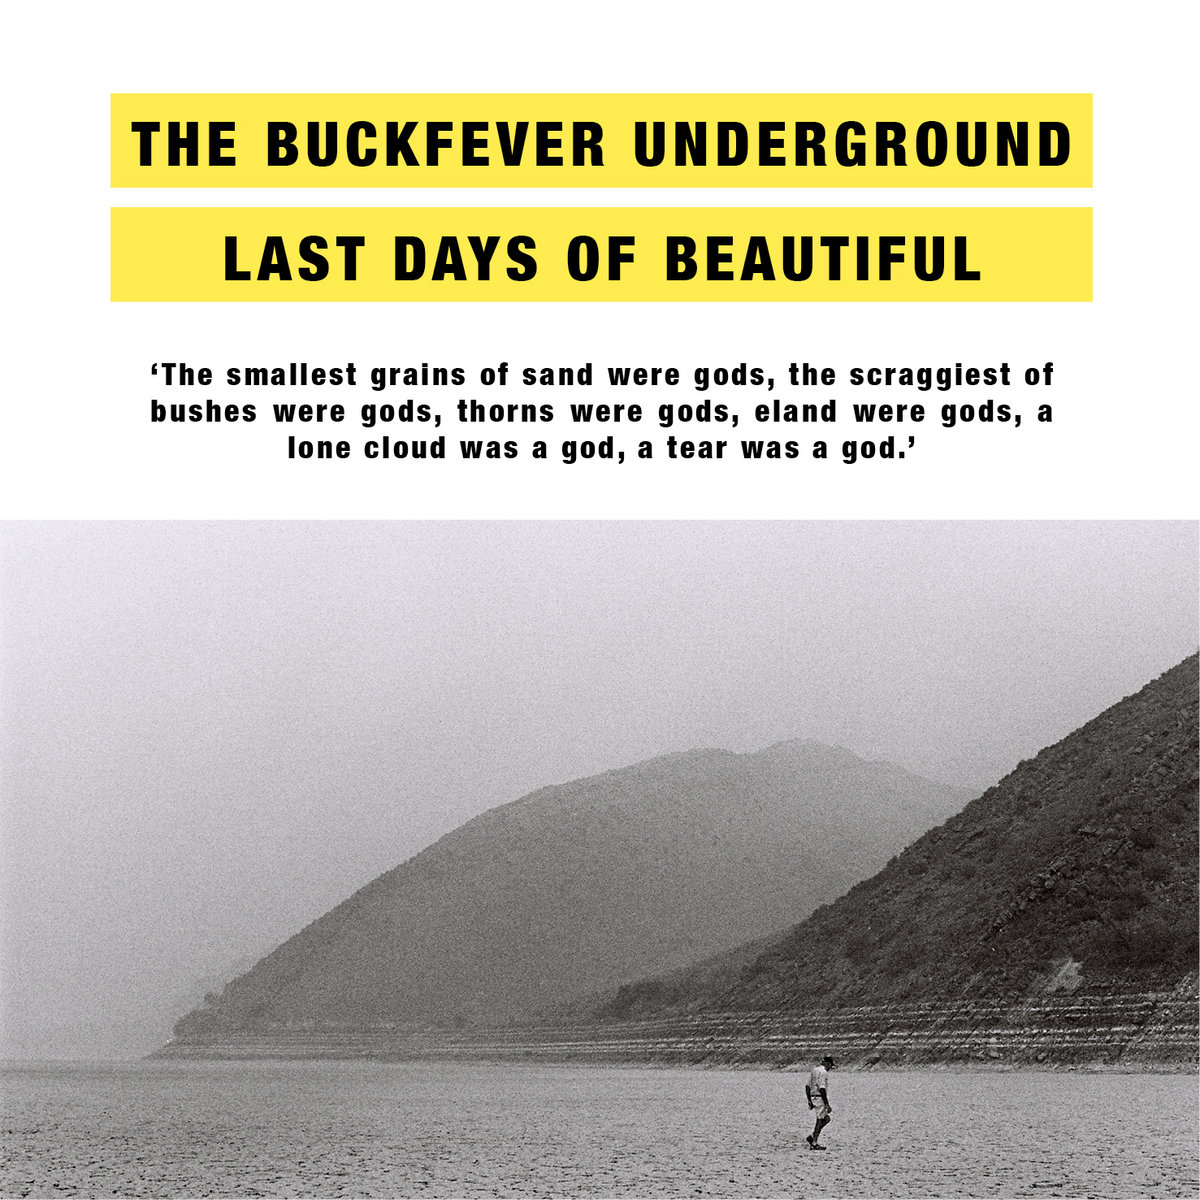 Push To Open Deur Last Days Of Beautiful Buckfever Underground